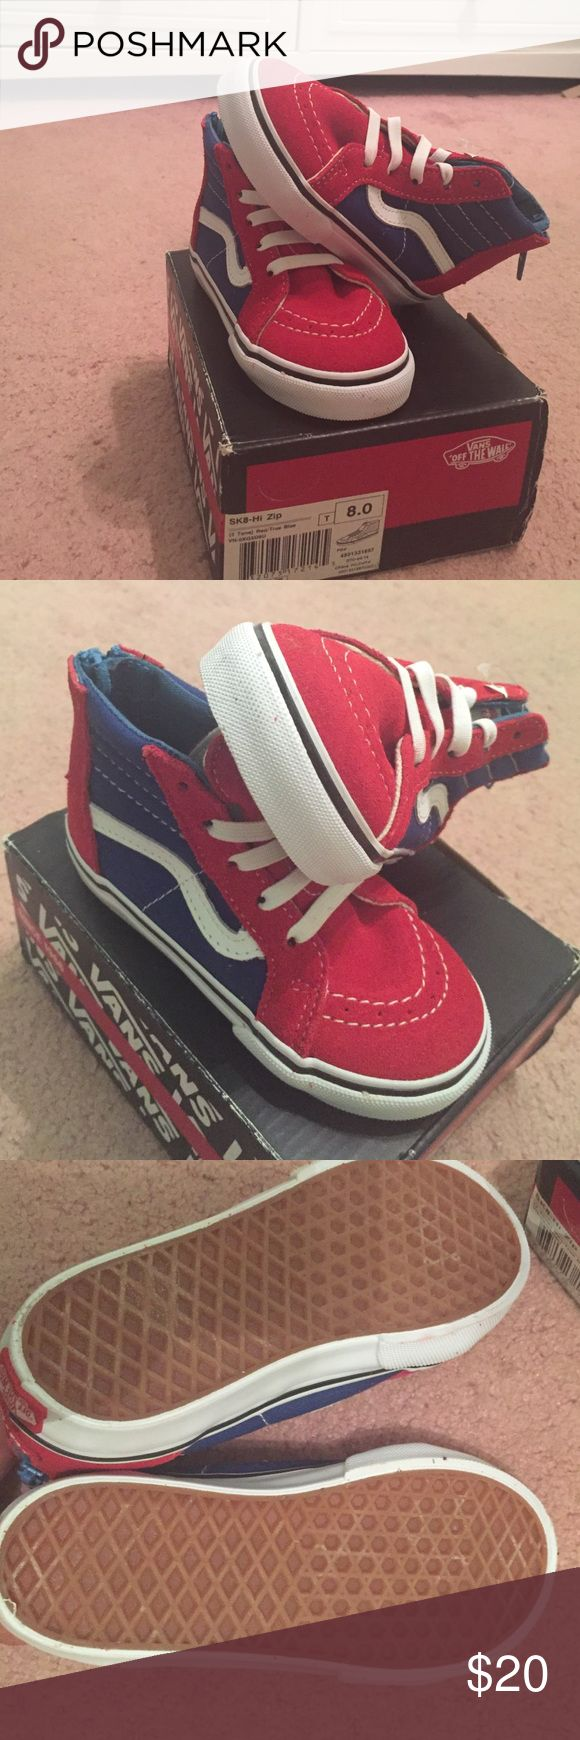 little boys vans brand new without tags-never used. little boys vans. shoe box included Vans Shoes Sneakers